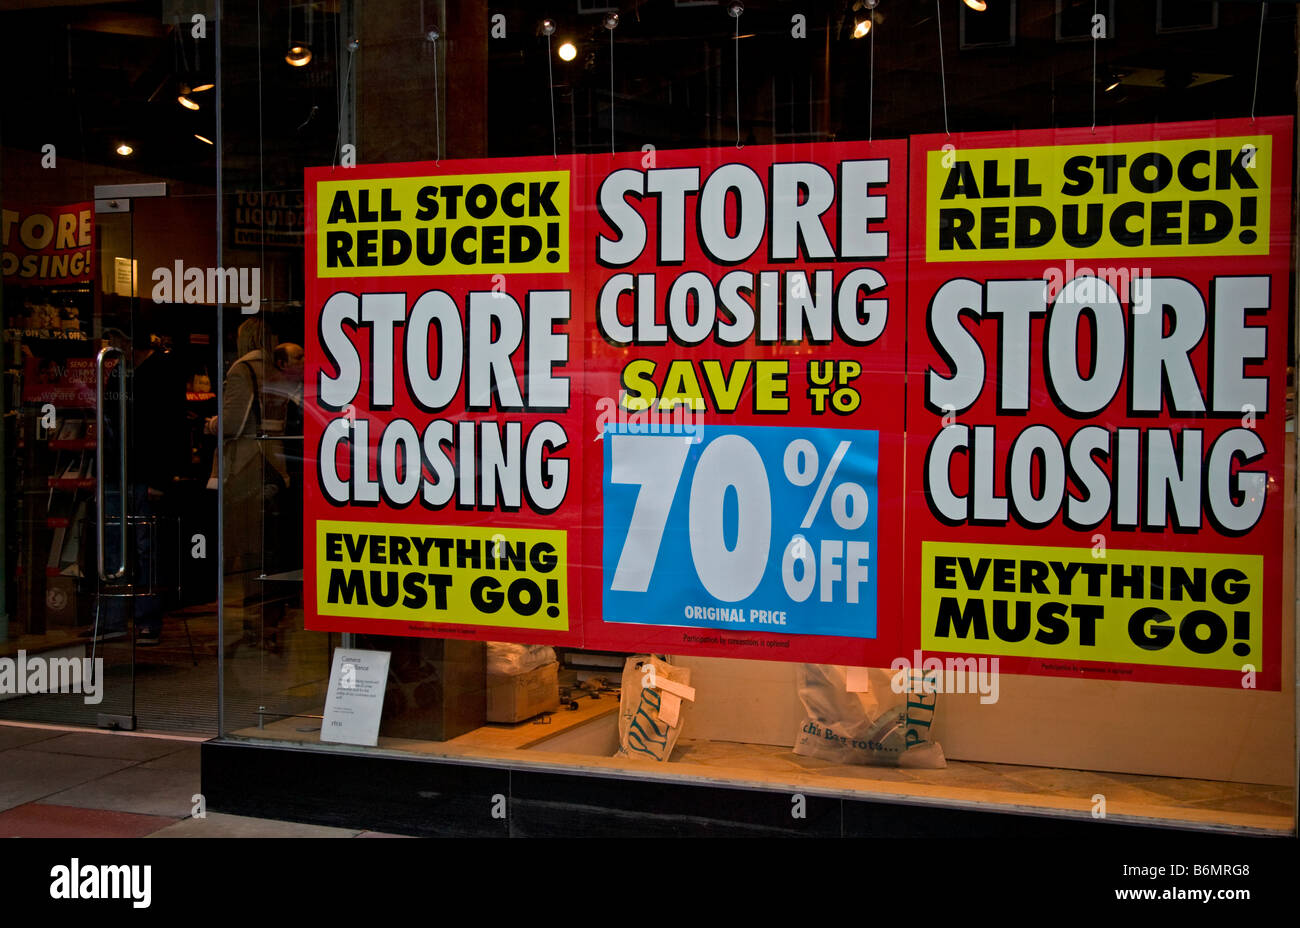 Shop window sale sign display store closing stock reduced, Scotland, UK, Europe - Stock Image